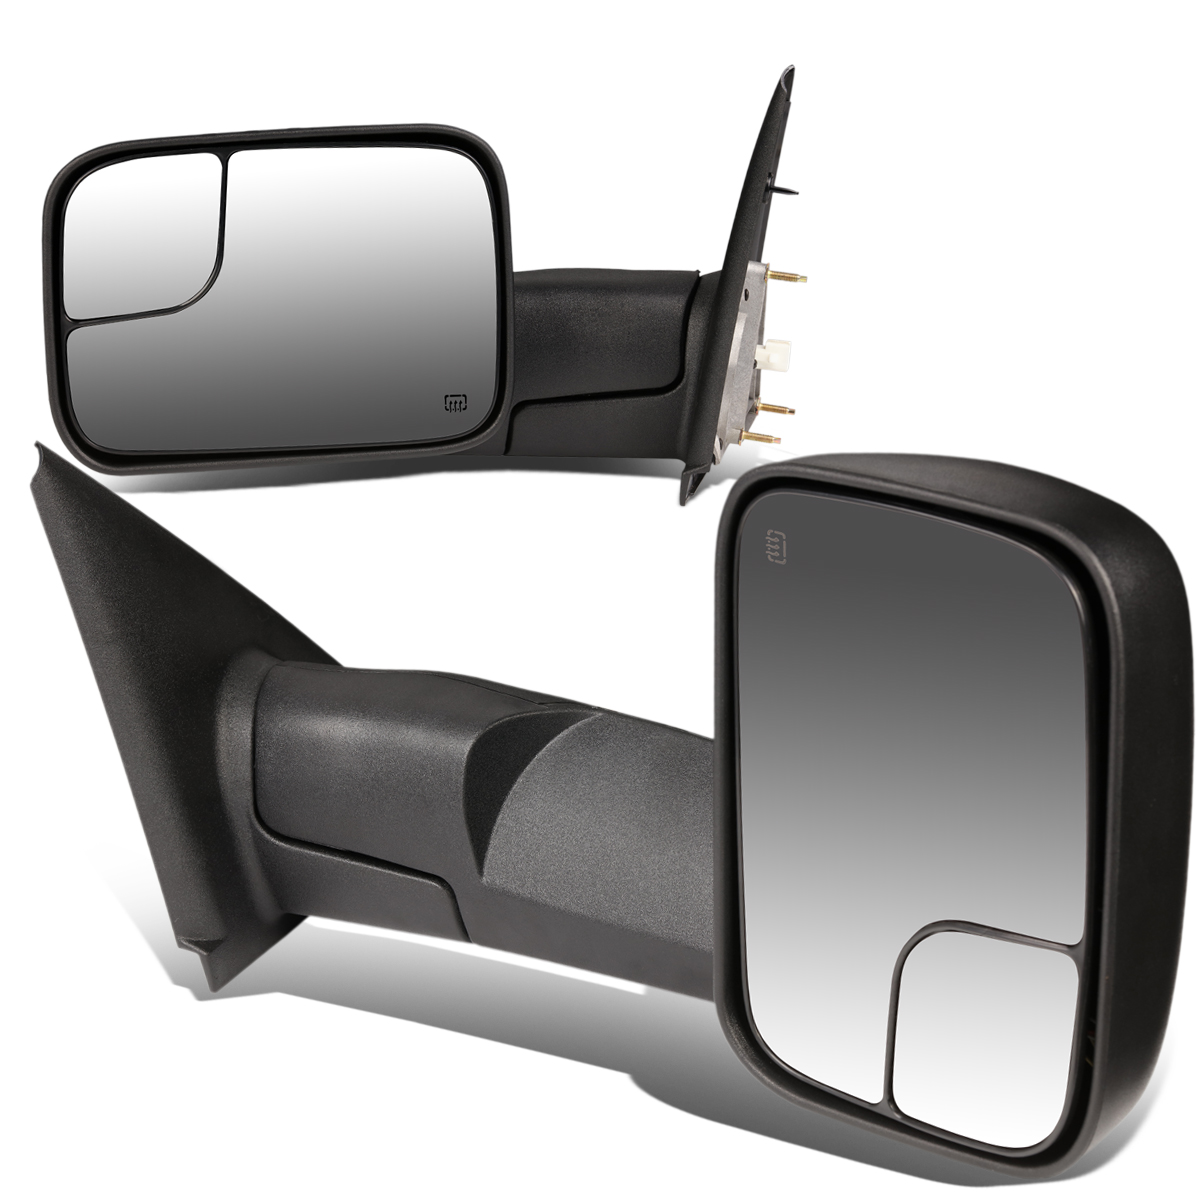 For 02-09 Ram 1500 / 2500 / 3500 Pair of Black Powered + Heated Glass + Manual Foldable Side Towing Mirrors 05 06 07 08